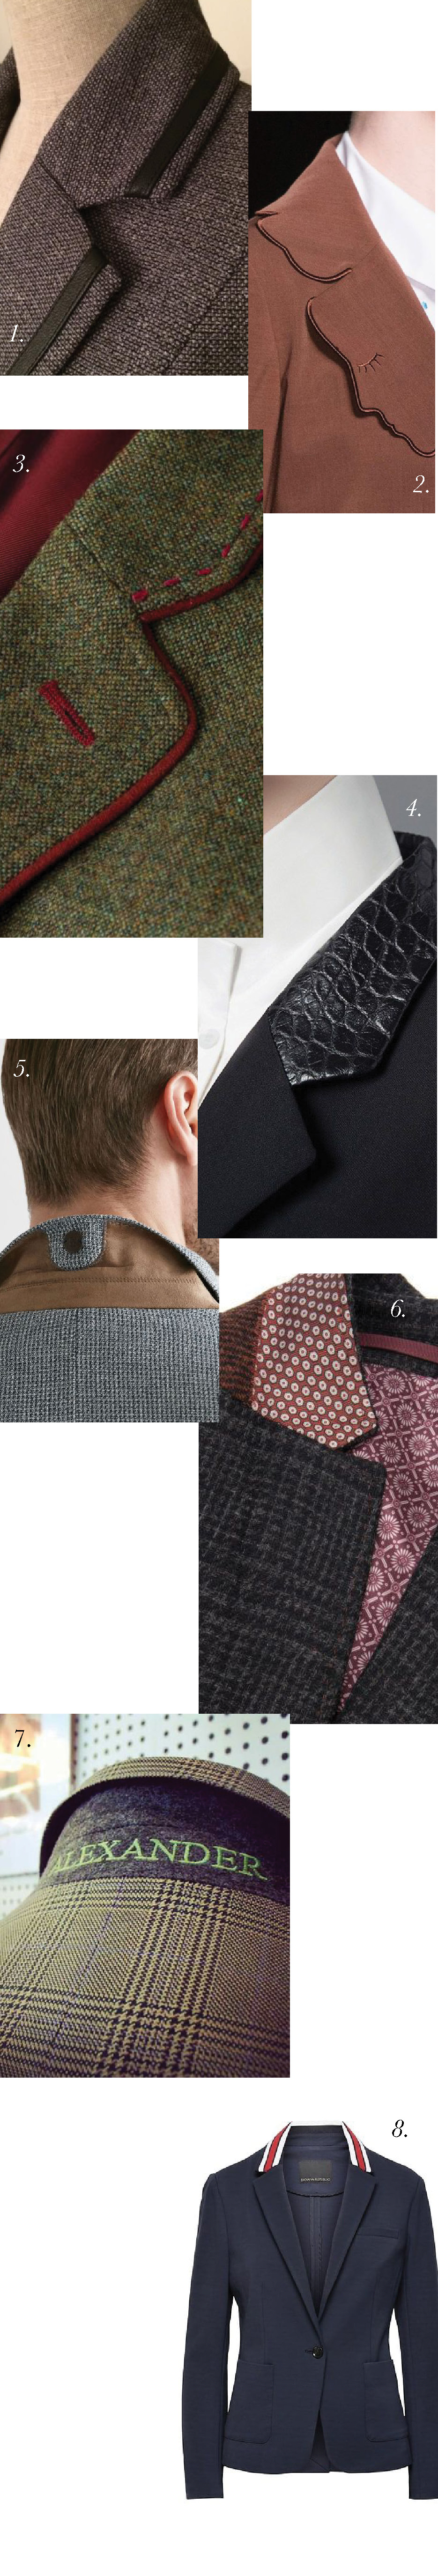 Bespoke Tailoring Details // Closet Case Patterns